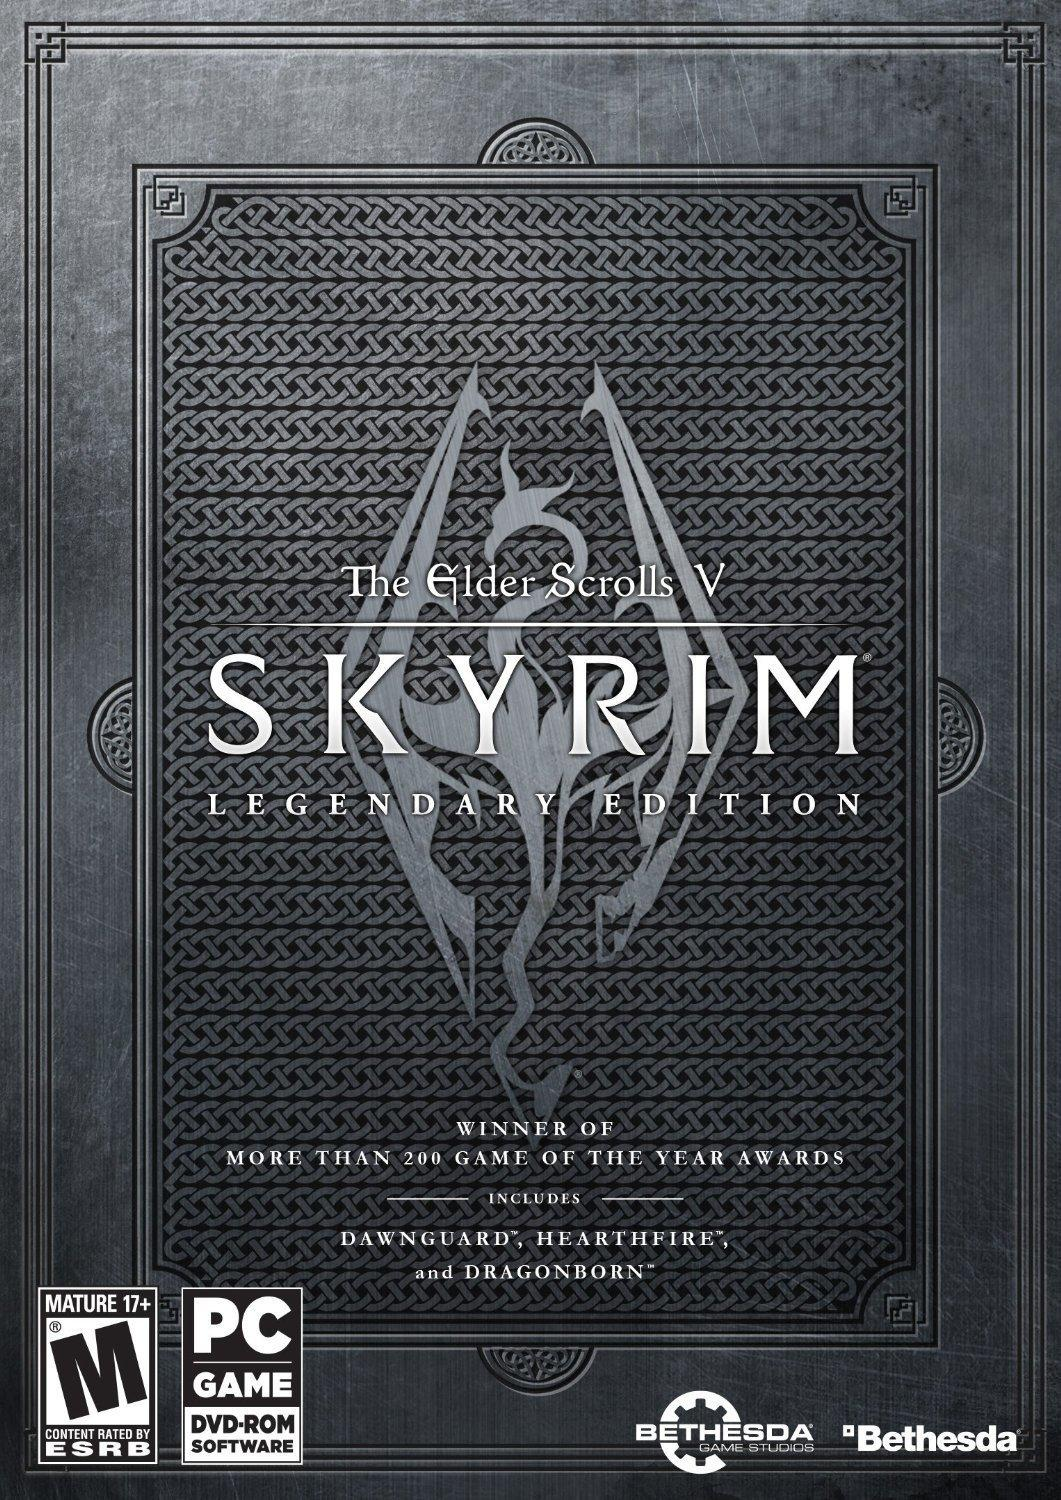 Skyrim, Elder Scrolls, Sale, Amazon